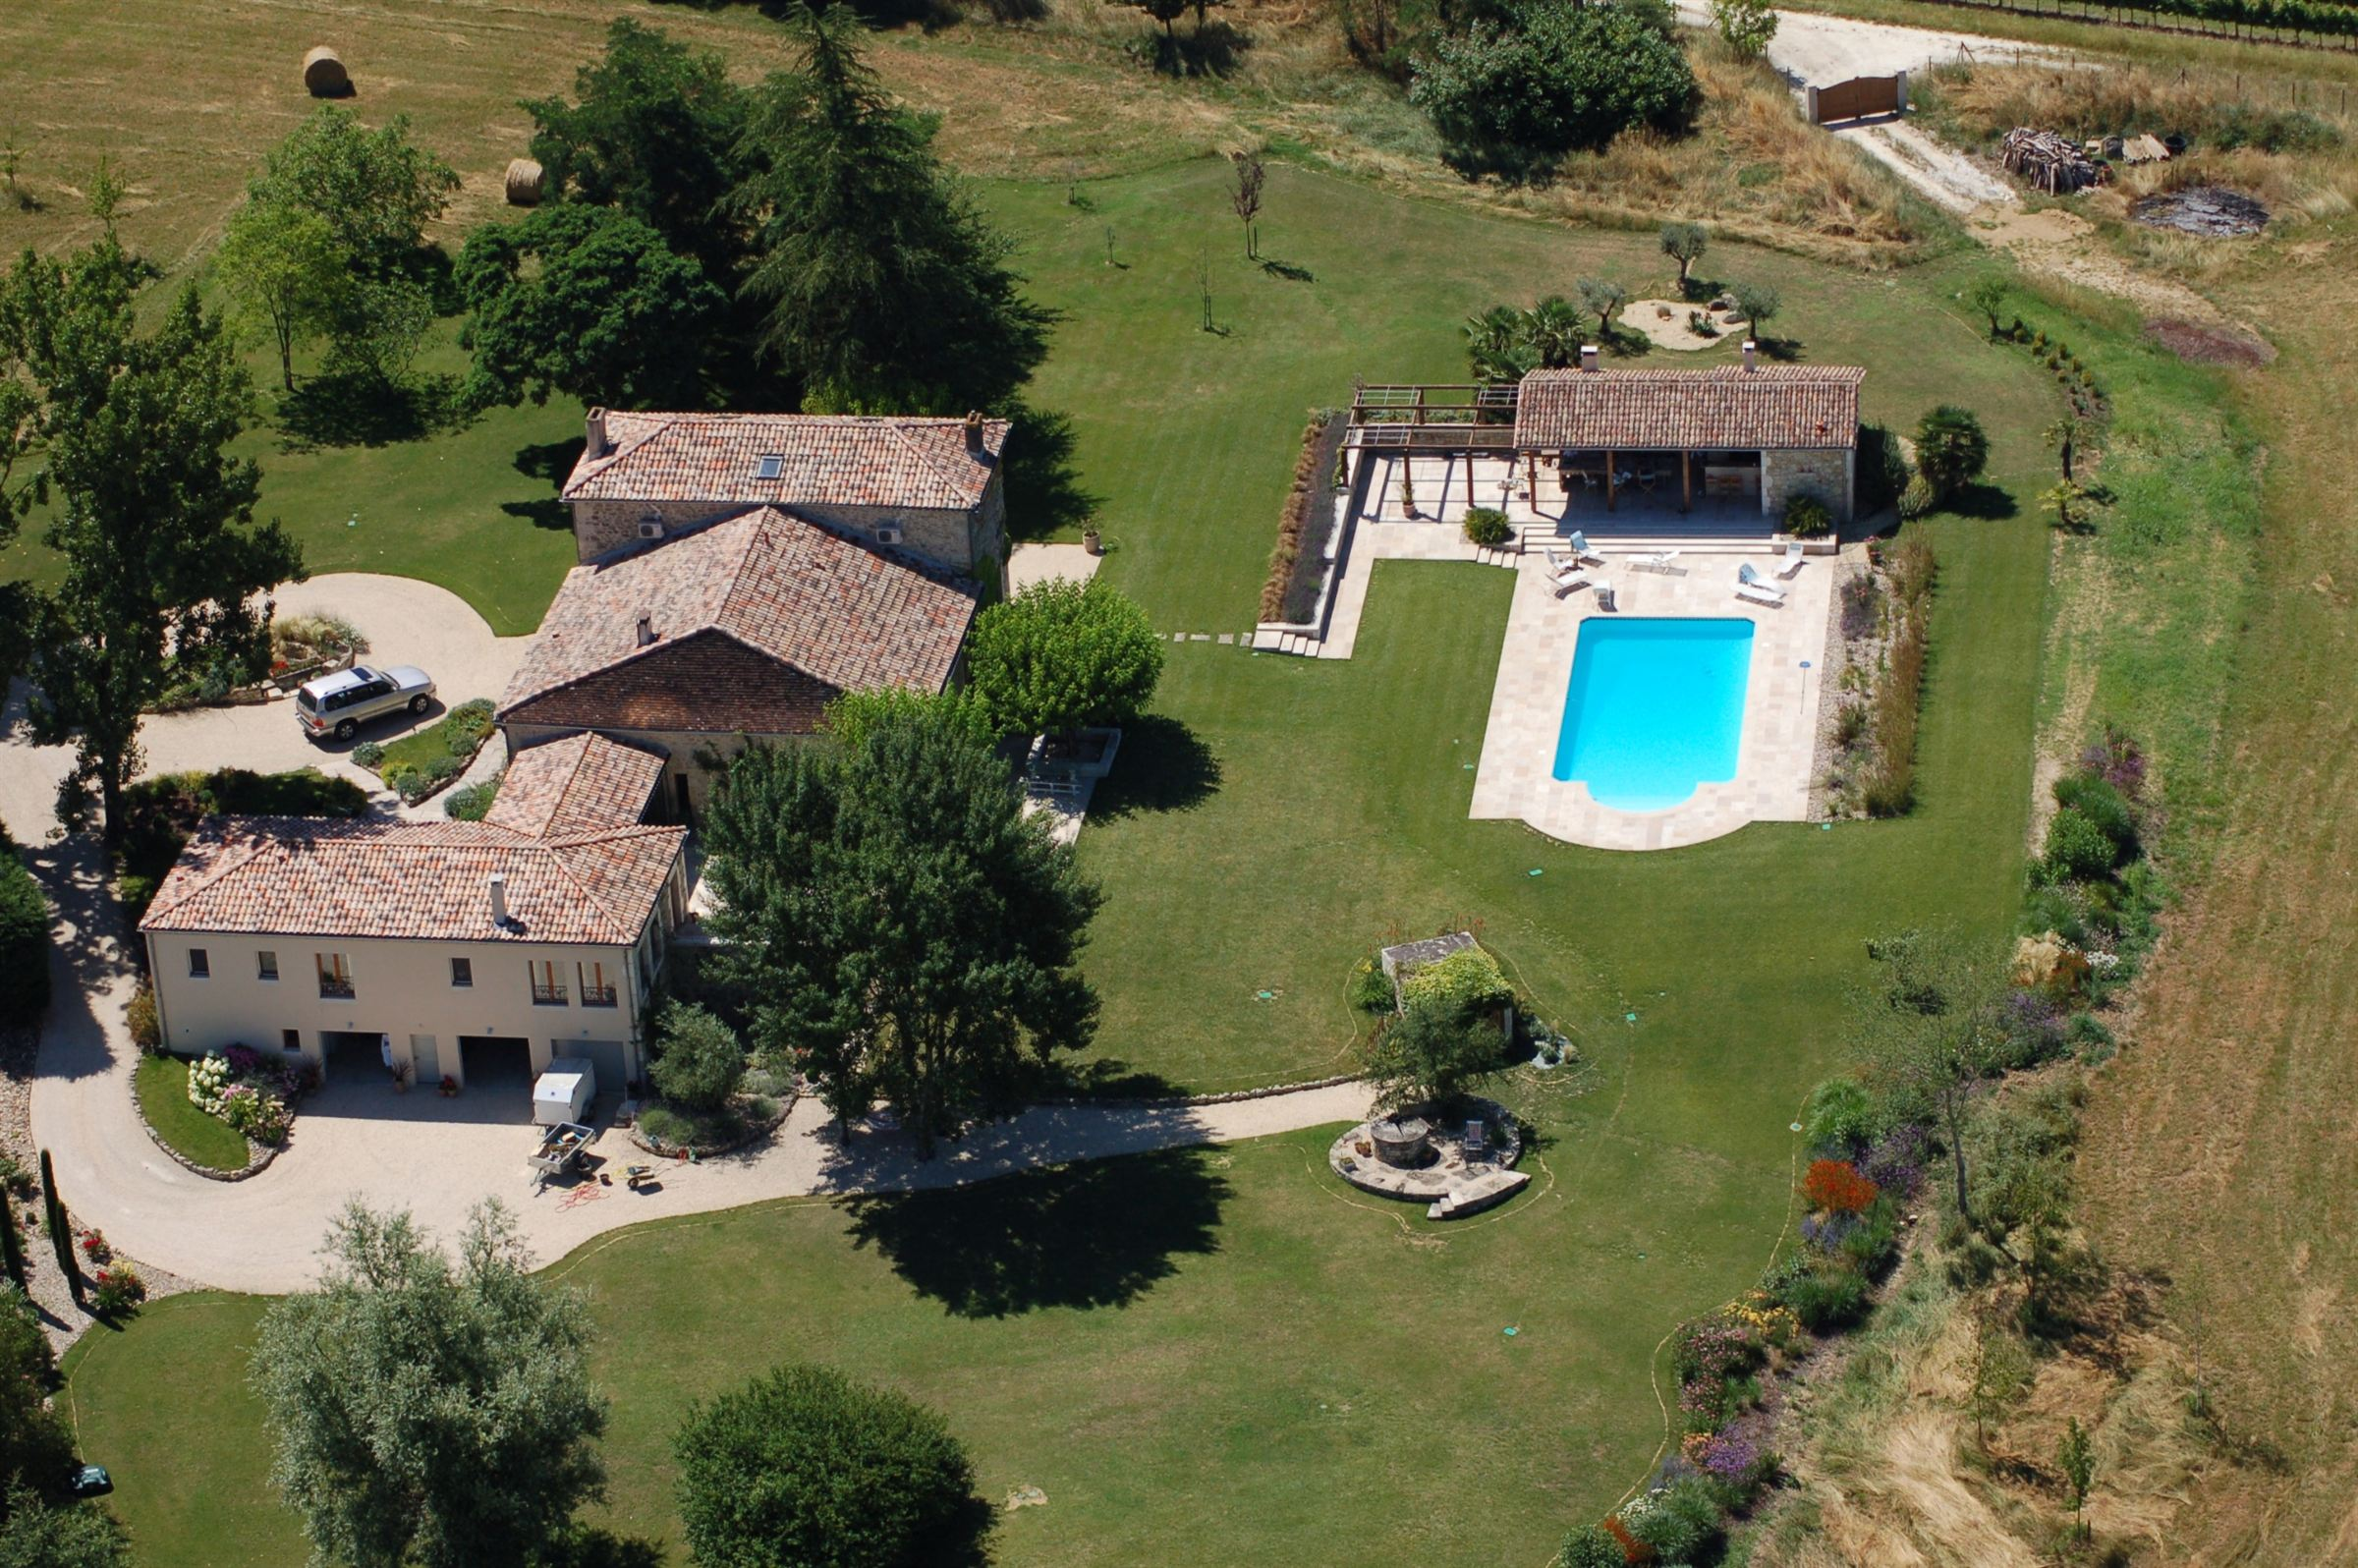 Moradia para Venda às 50 MN BORDEAUX - IDEAL HOLIDAY HOME - BUCOLIC SETTING Bordeaux, Aquitaine, 33000 França